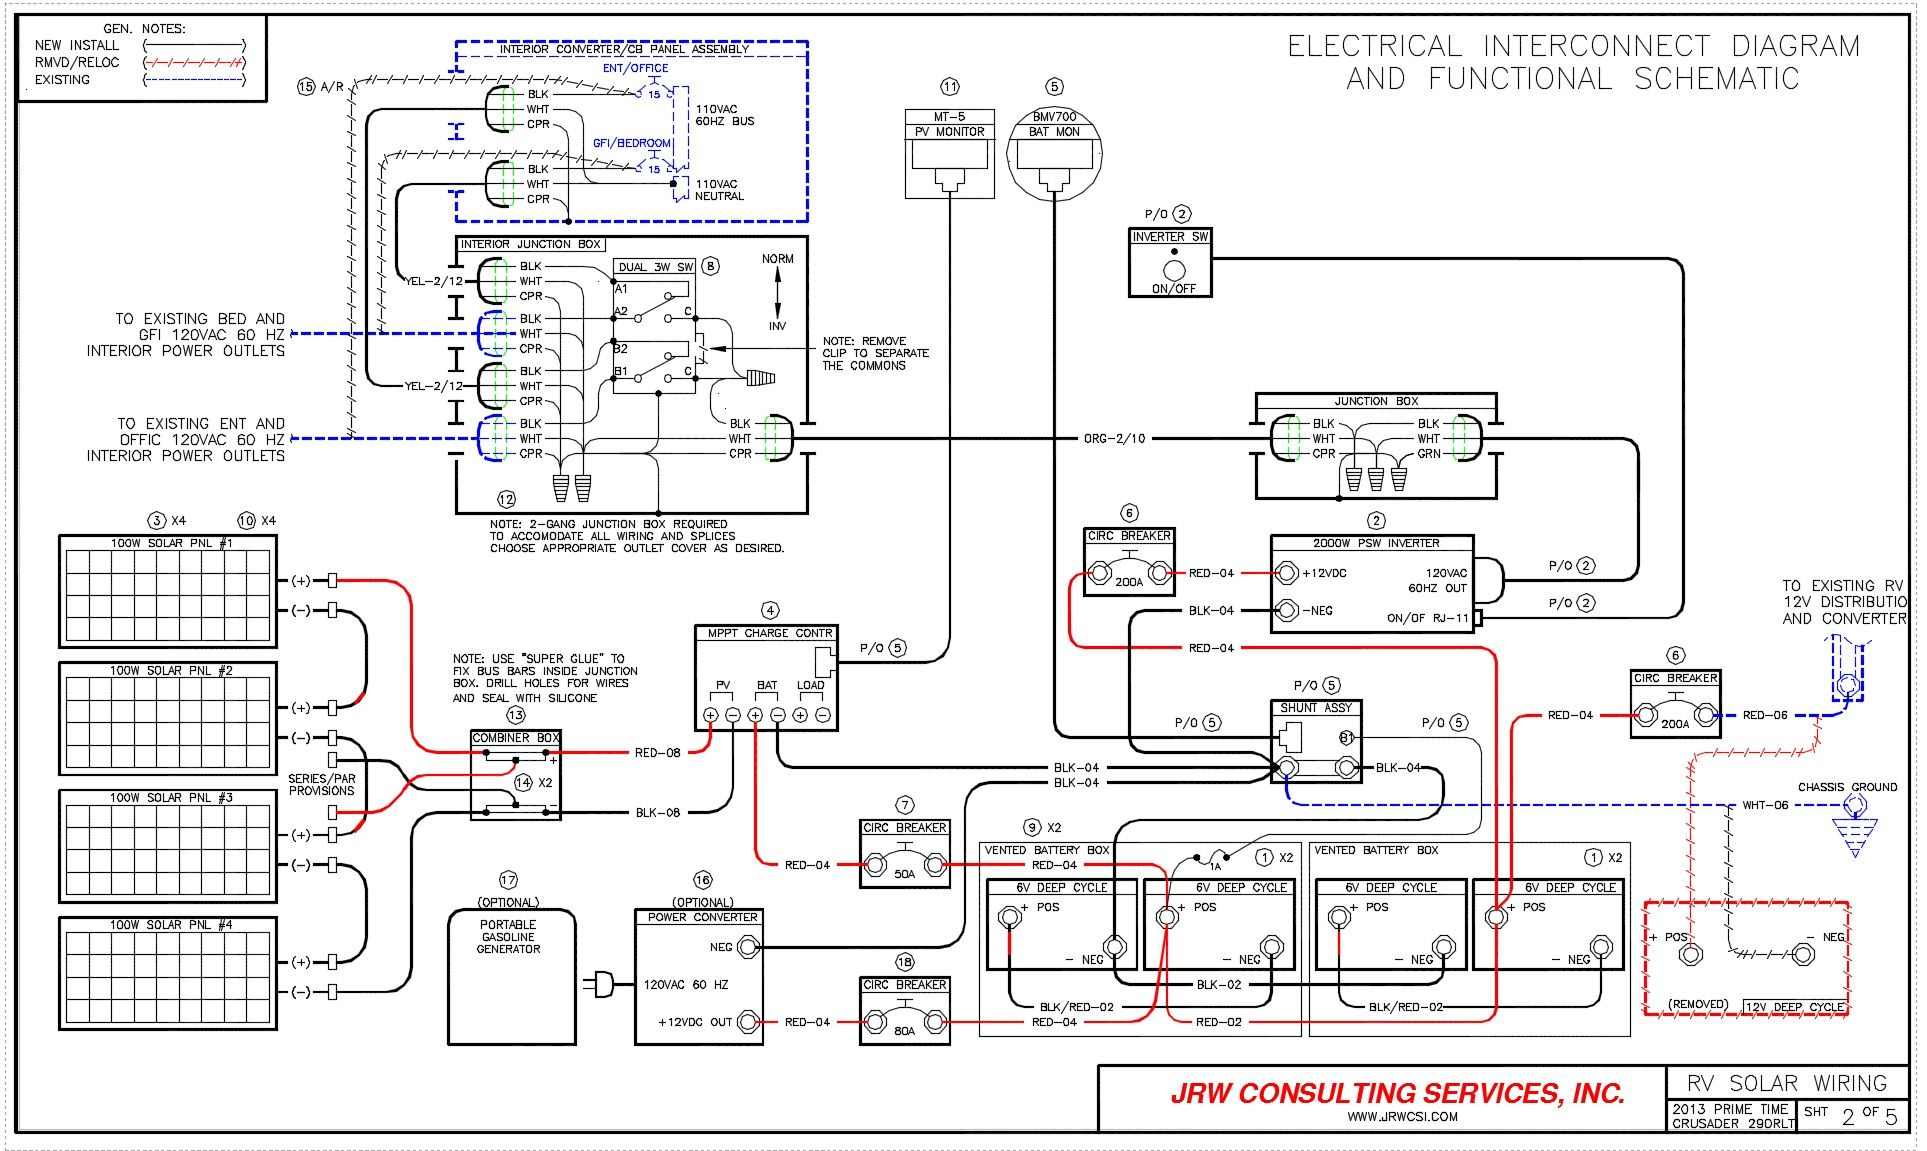 23 Automatic Electrical Wiring Diagram Software Free Download Https Bacamajalah Com 23 Automatic Electrical Electrical Wiring Diagram Rv Solar Solar Panels